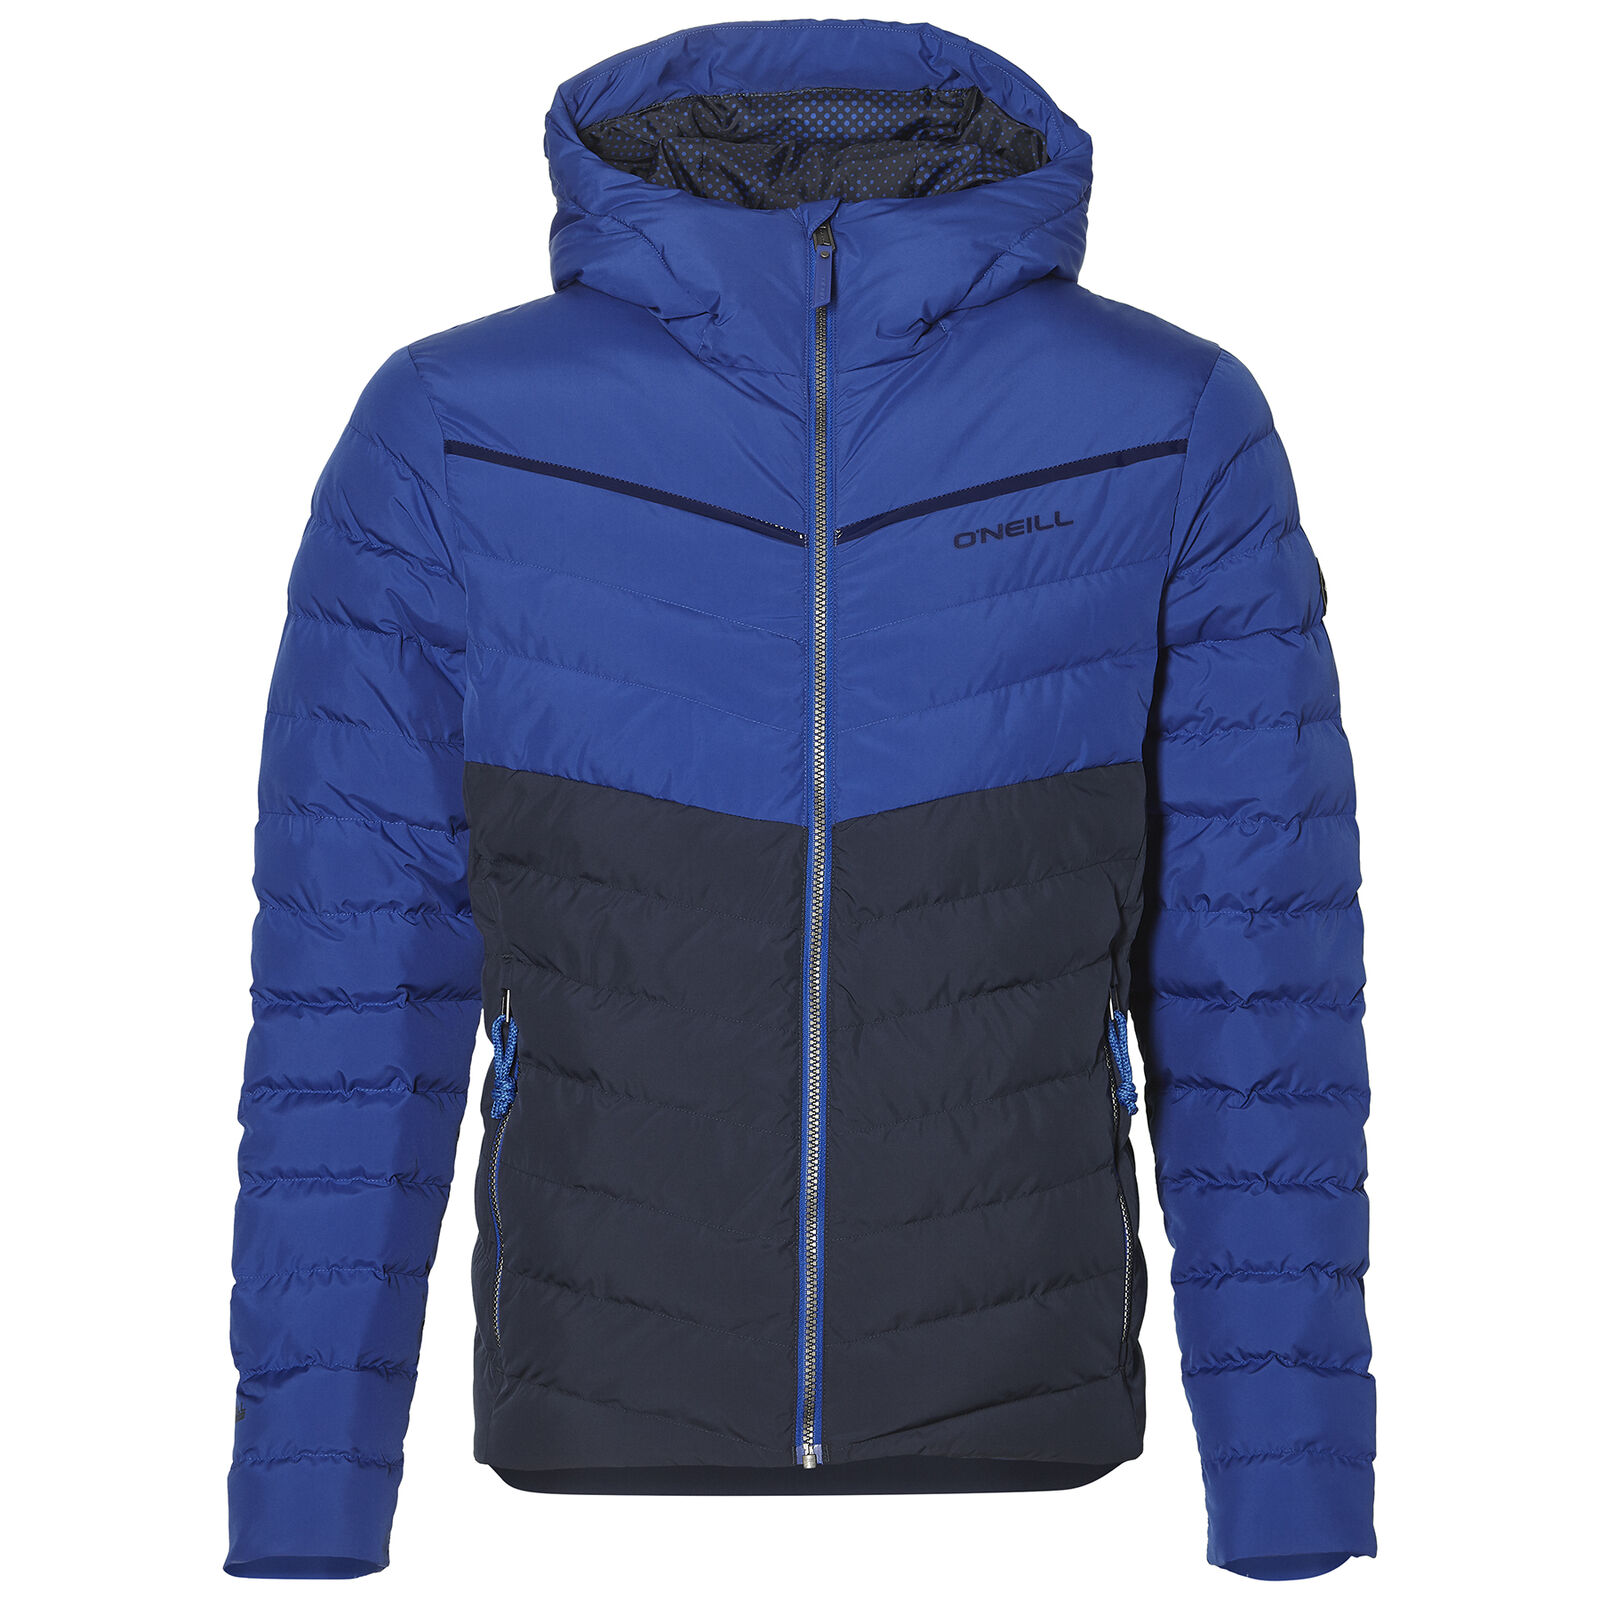 O'Neill Chaqueta Esquí Snowboard Pm Fase  Chaqueta blue Impermeable  cheap and top quality